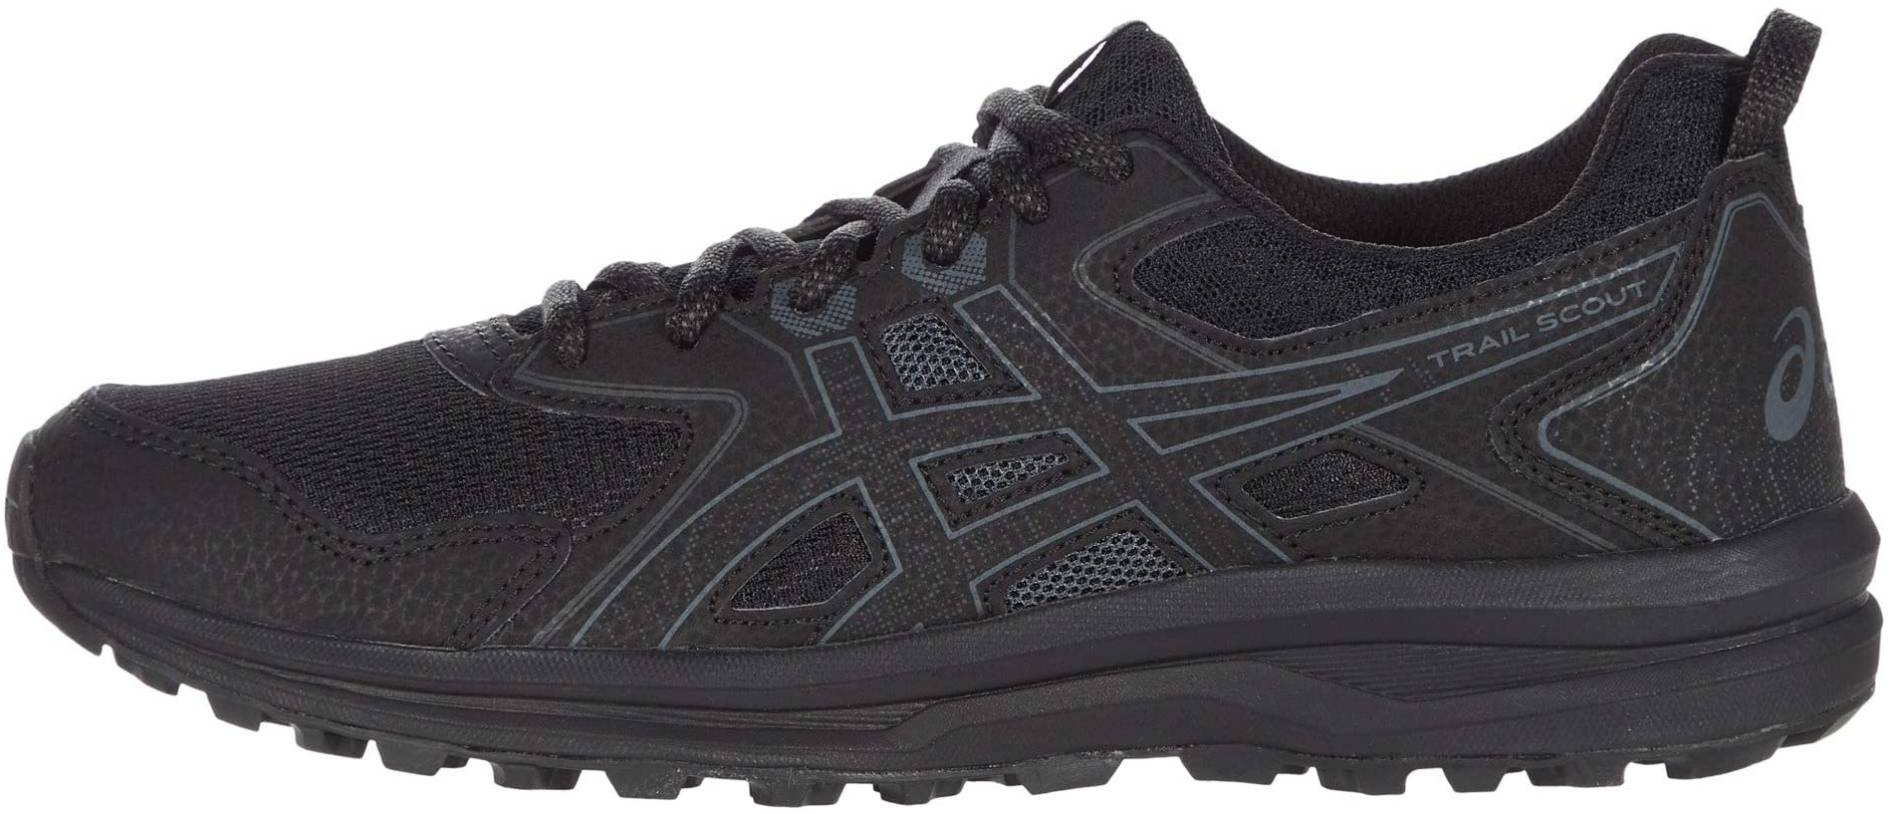 Asics Trail Scout - Deals ($40), Facts, Reviews (2021) | RunRepeat